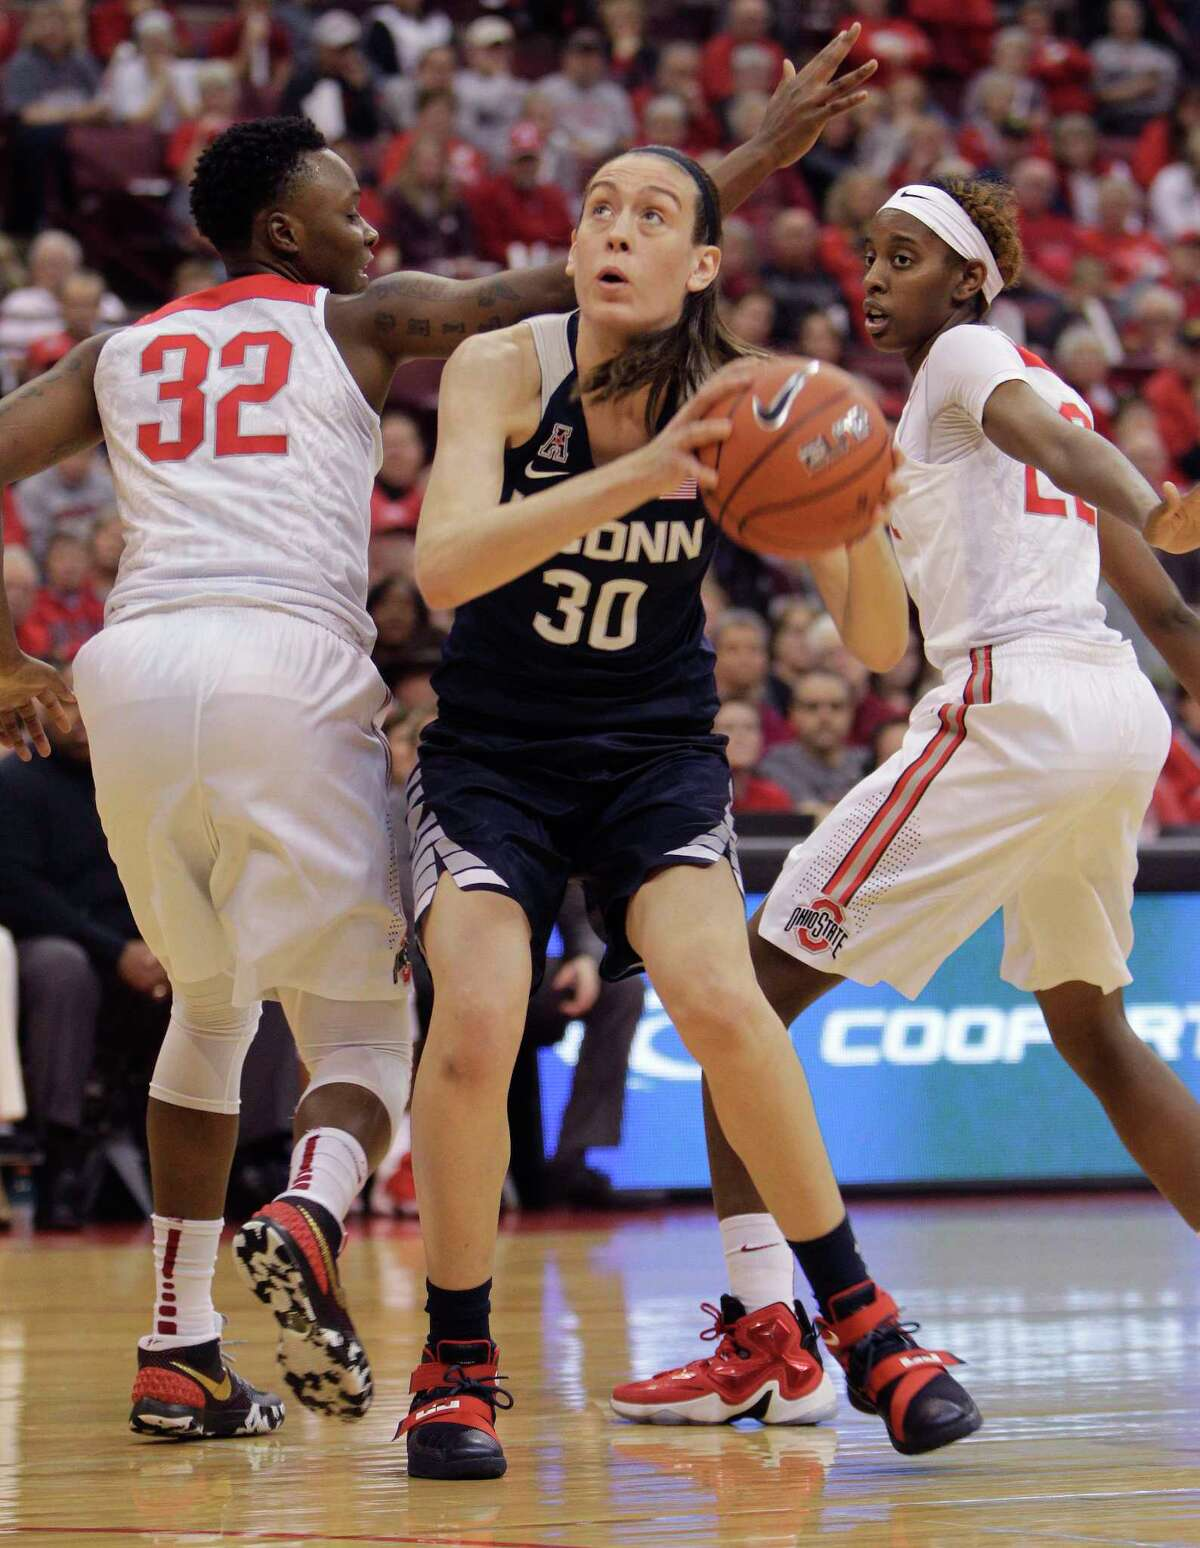 UConn's Breanna Stewart, center, drives to the basket between Ohio State's Shayla Cooper, left, and Alexa Hart during the first quarter Monday.